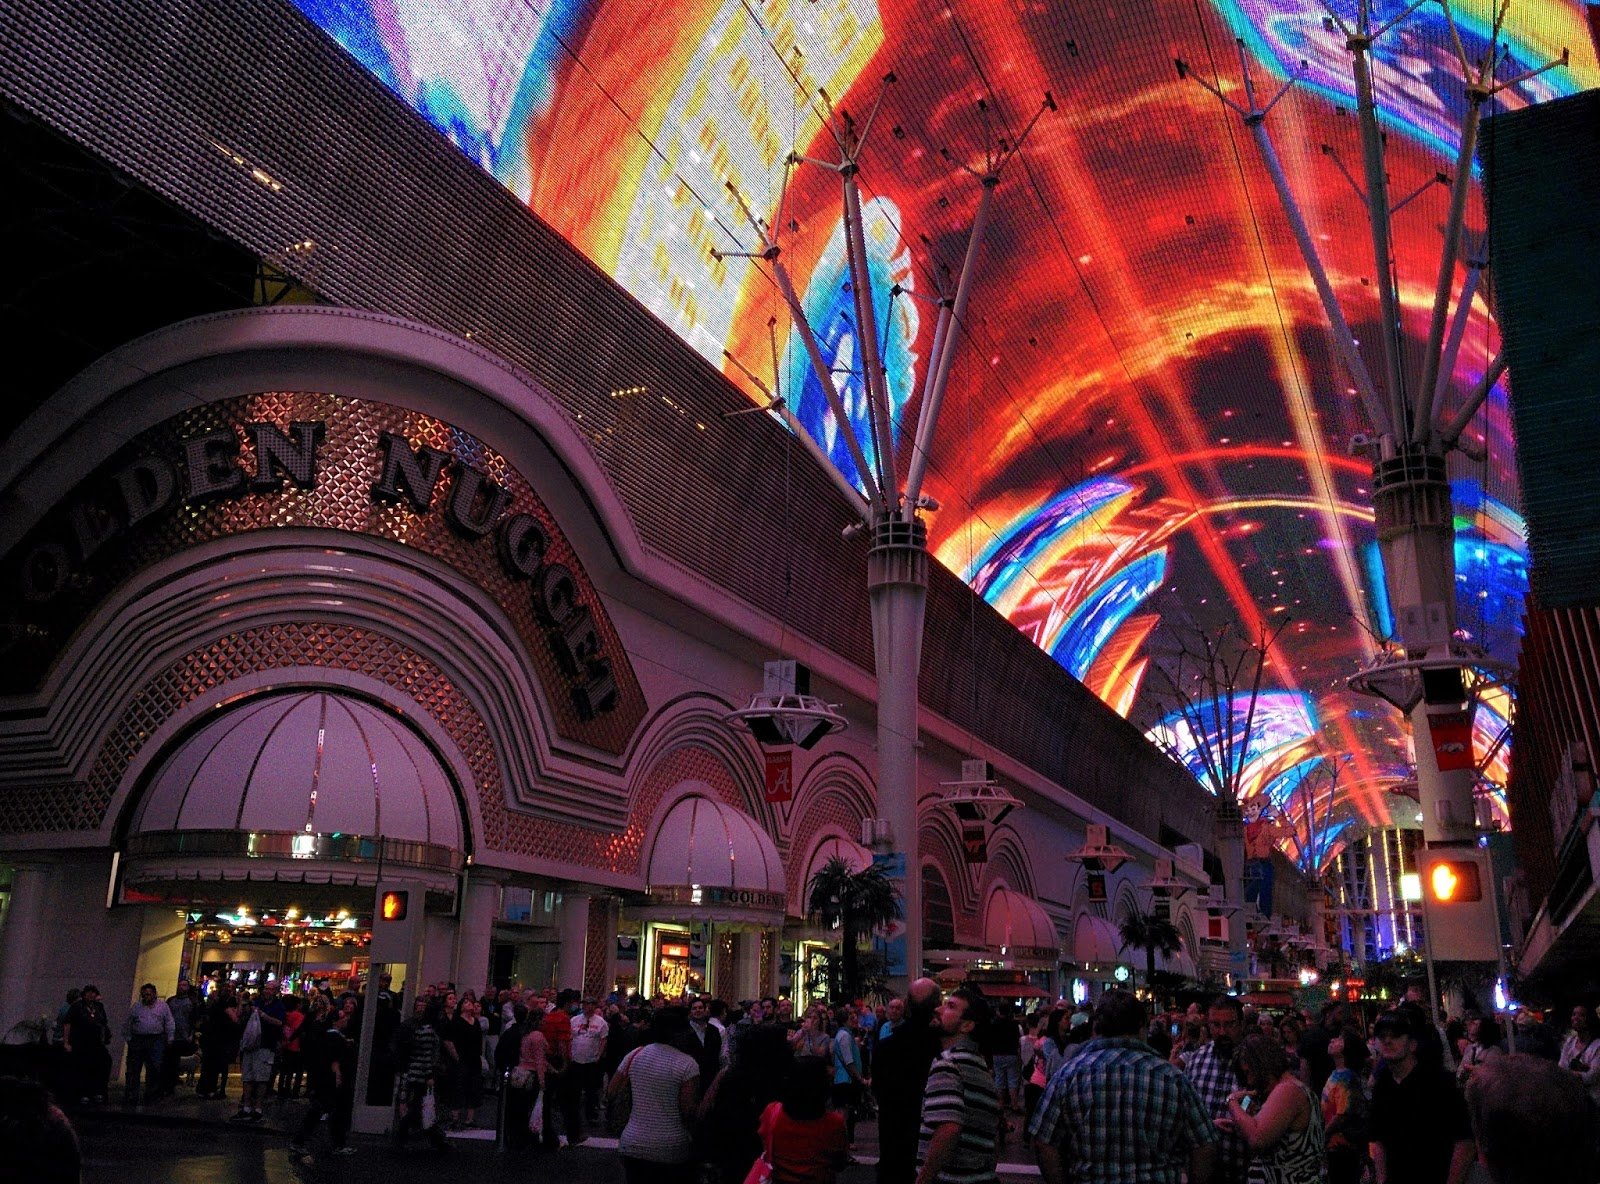 Las Vegas And Hoover Dam & Where Is Darren Now?: Las Vegas And Hoover Dam